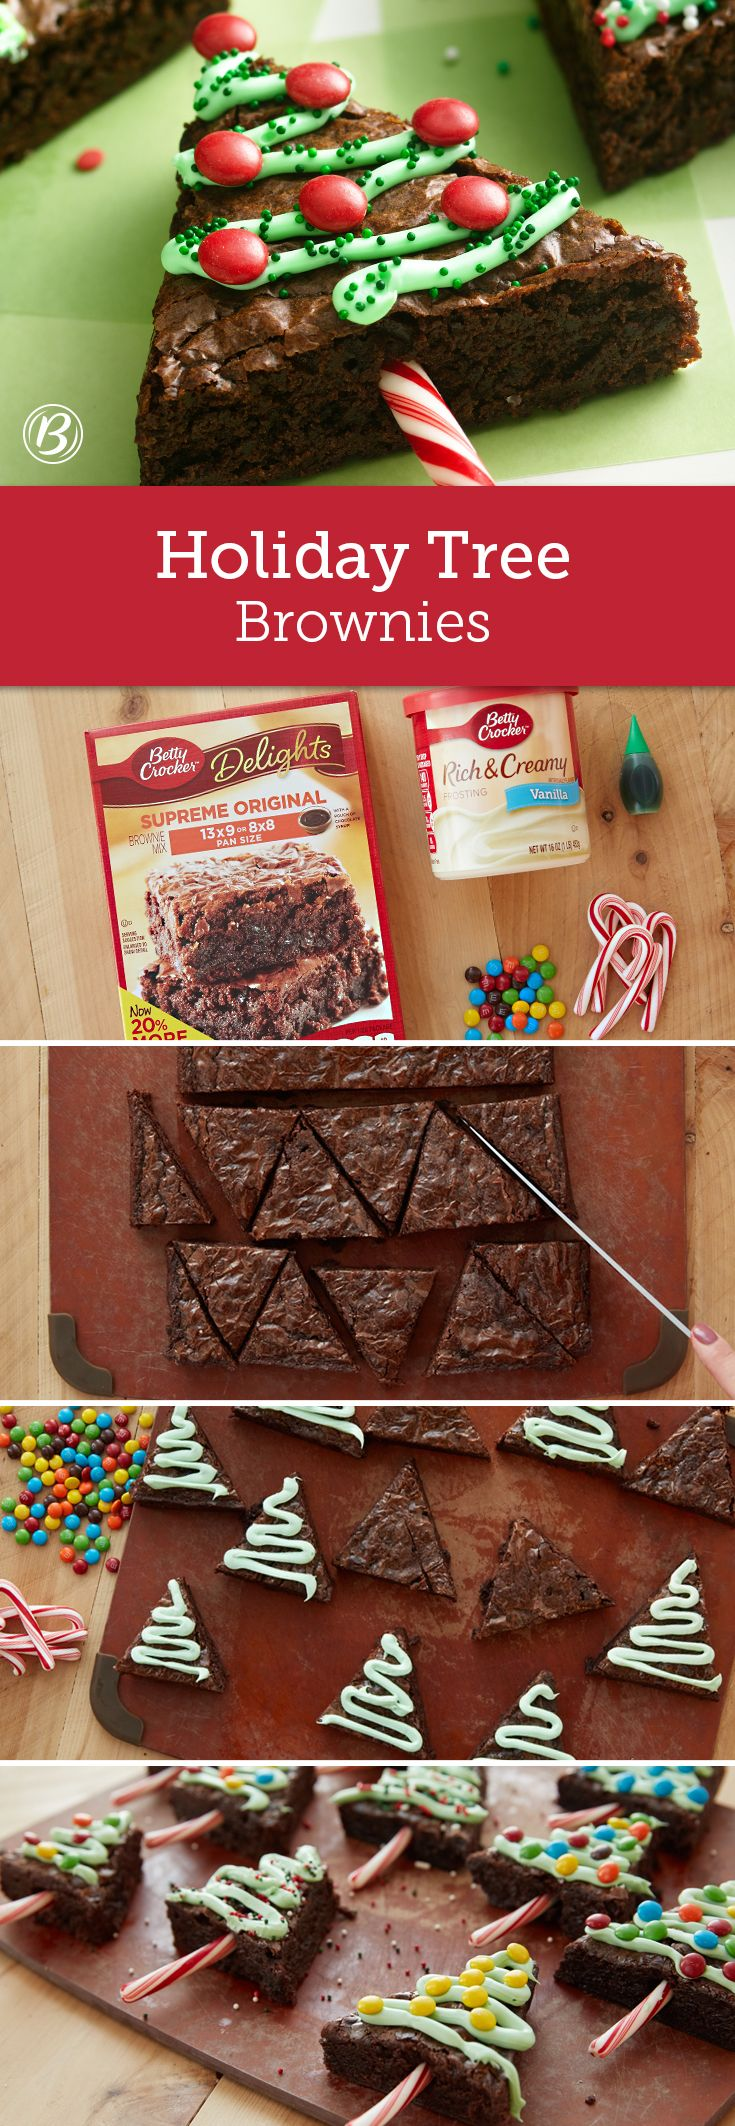 A pan of brownies gets extra holiday cheer when cut into triangles and decorated as Christmas trees. Candy canes make for festive tree stumps, while kids can have fun decorating the brownies with frosting garland and candy ornaments. The brownies are the perfect size for a lunchbox treat or after-school sweet!